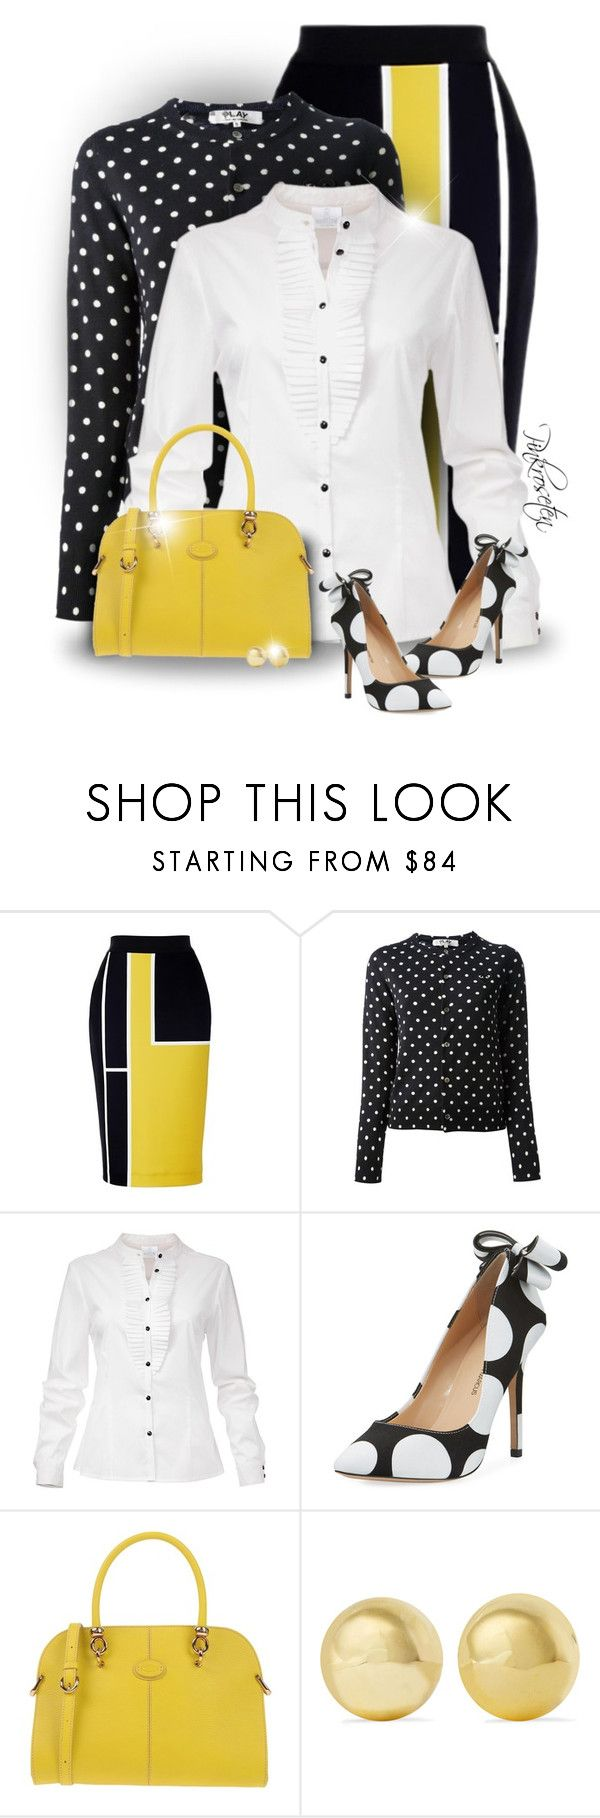 Polka Dots by pinkroseten on Polyvore featuring Play Comme des Garçons, Neiman Marcus, Tod's and Kenneth Jay Lane